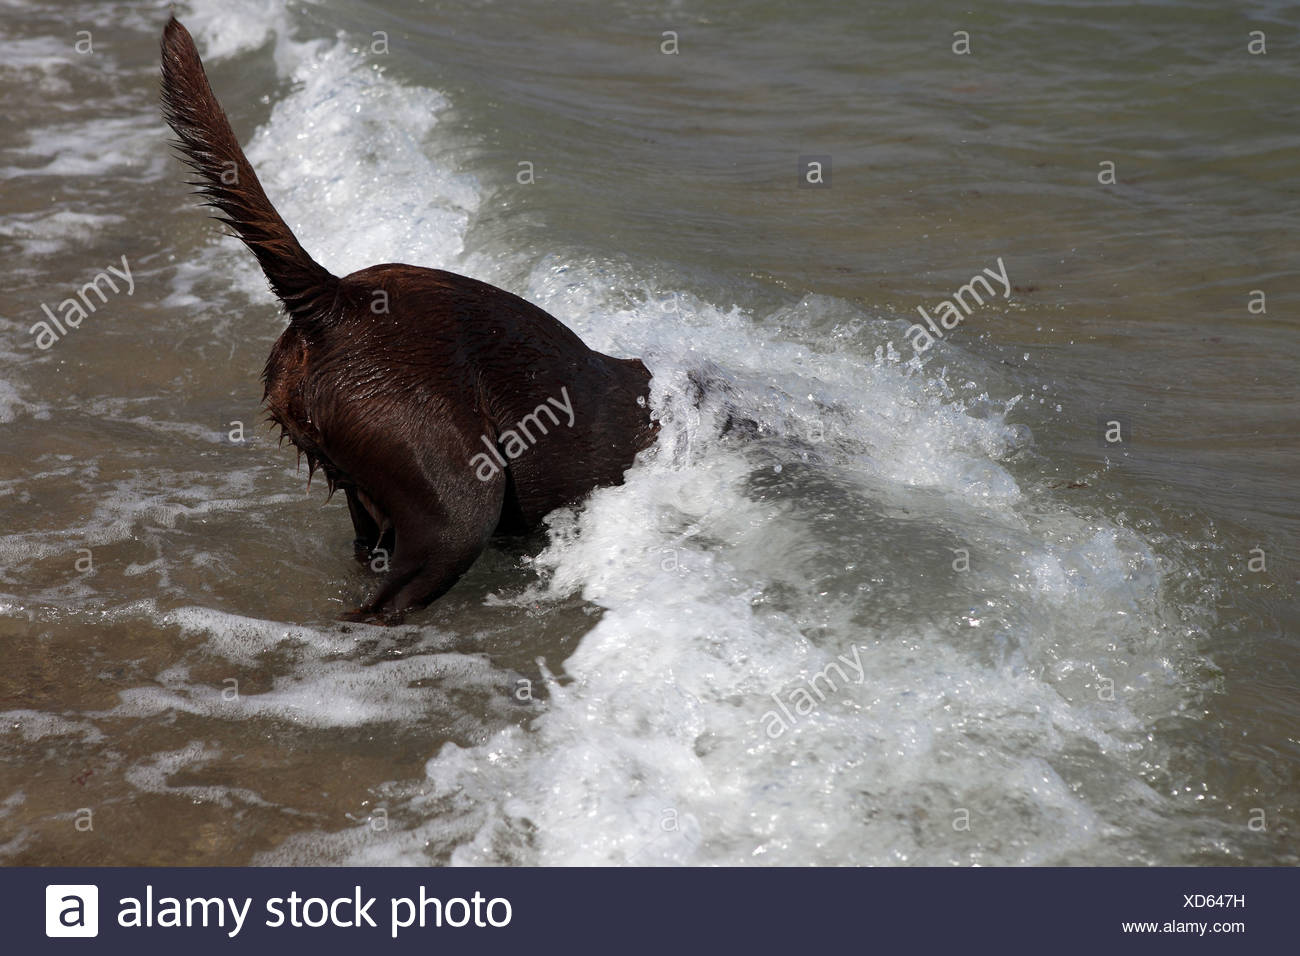 Kägsdorf, Germany, the dog is recorded on the beach by a wave - Stock Image